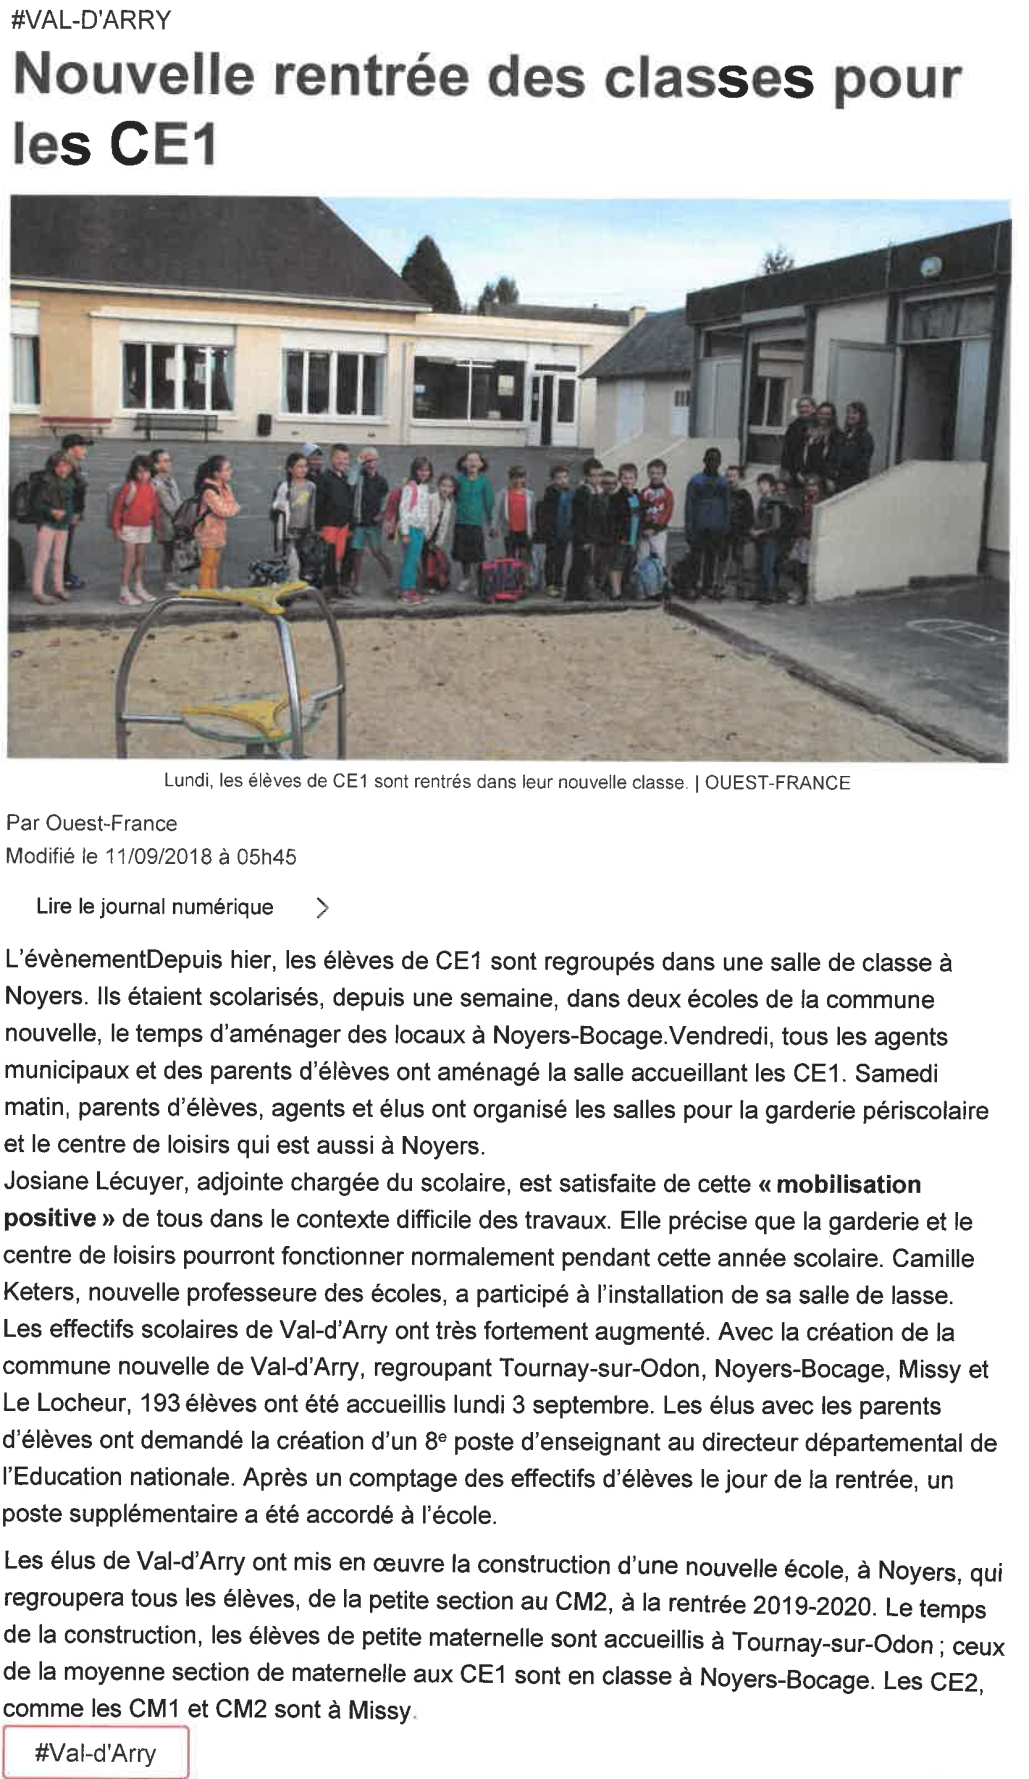 20180917article of rentree 8e poste